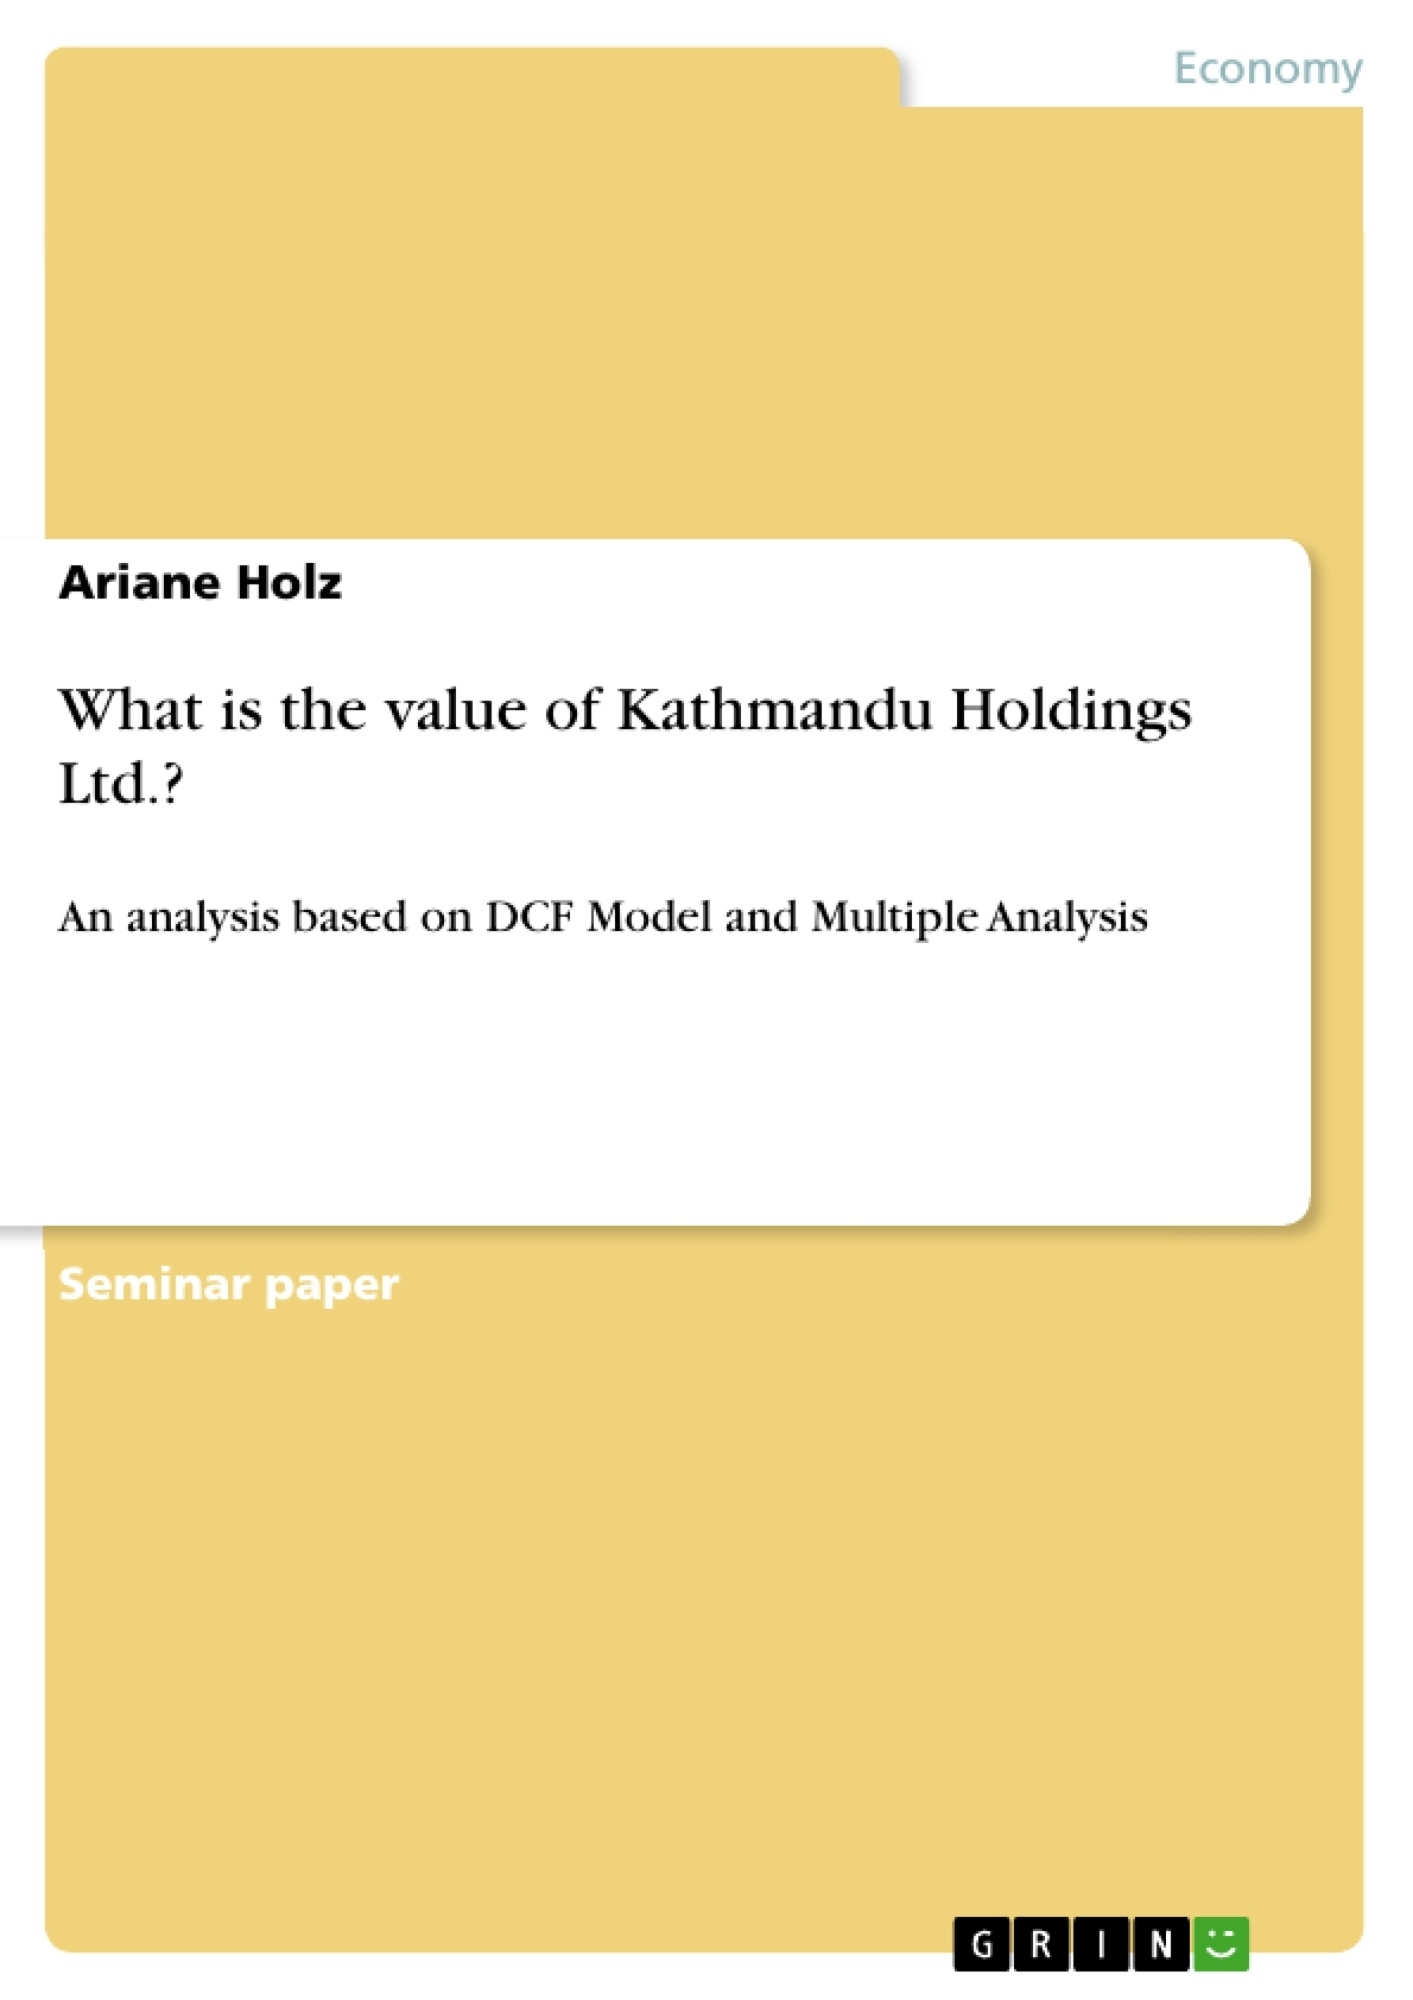 Title: What is the value of Kathmandu Holdings Ltd.?